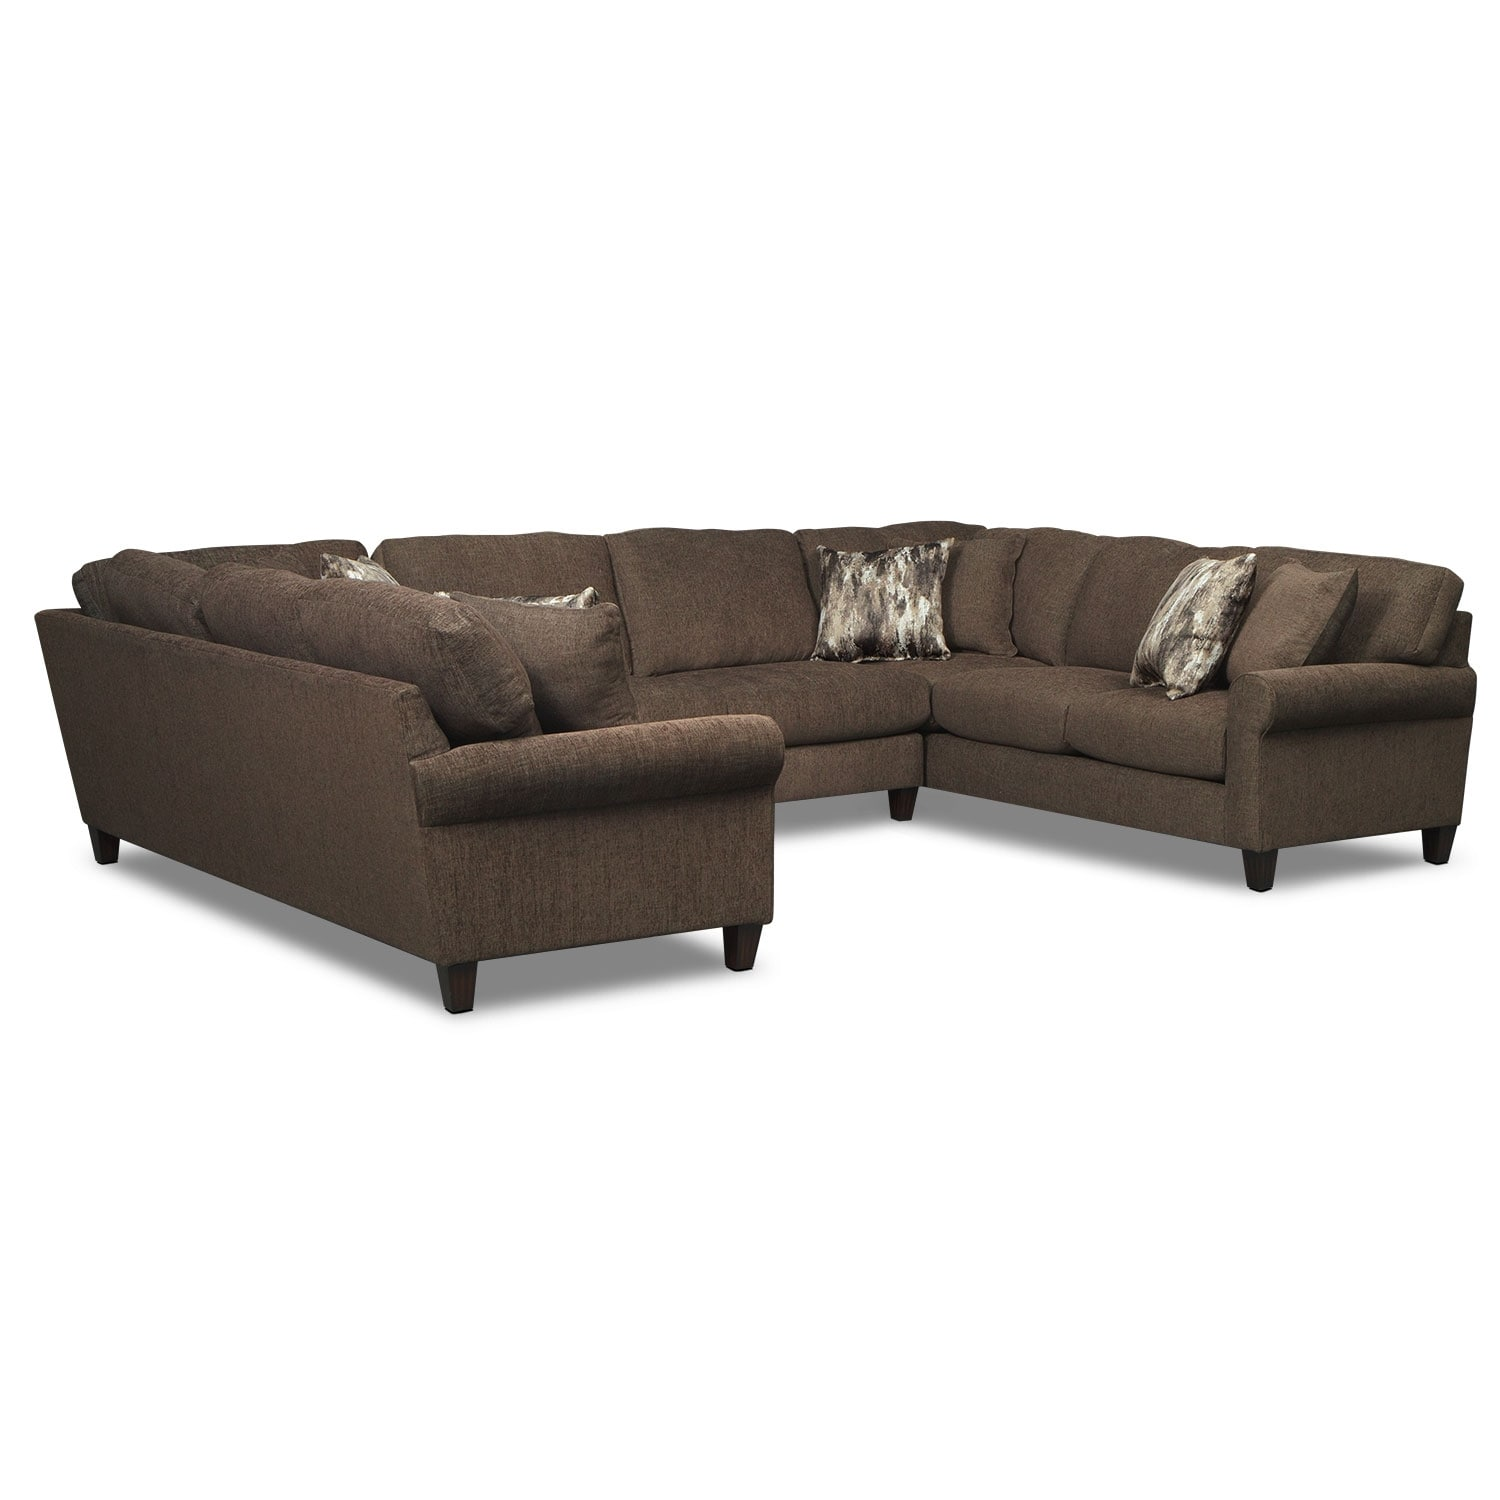 Karma 3-Piece Sectional - Smoke